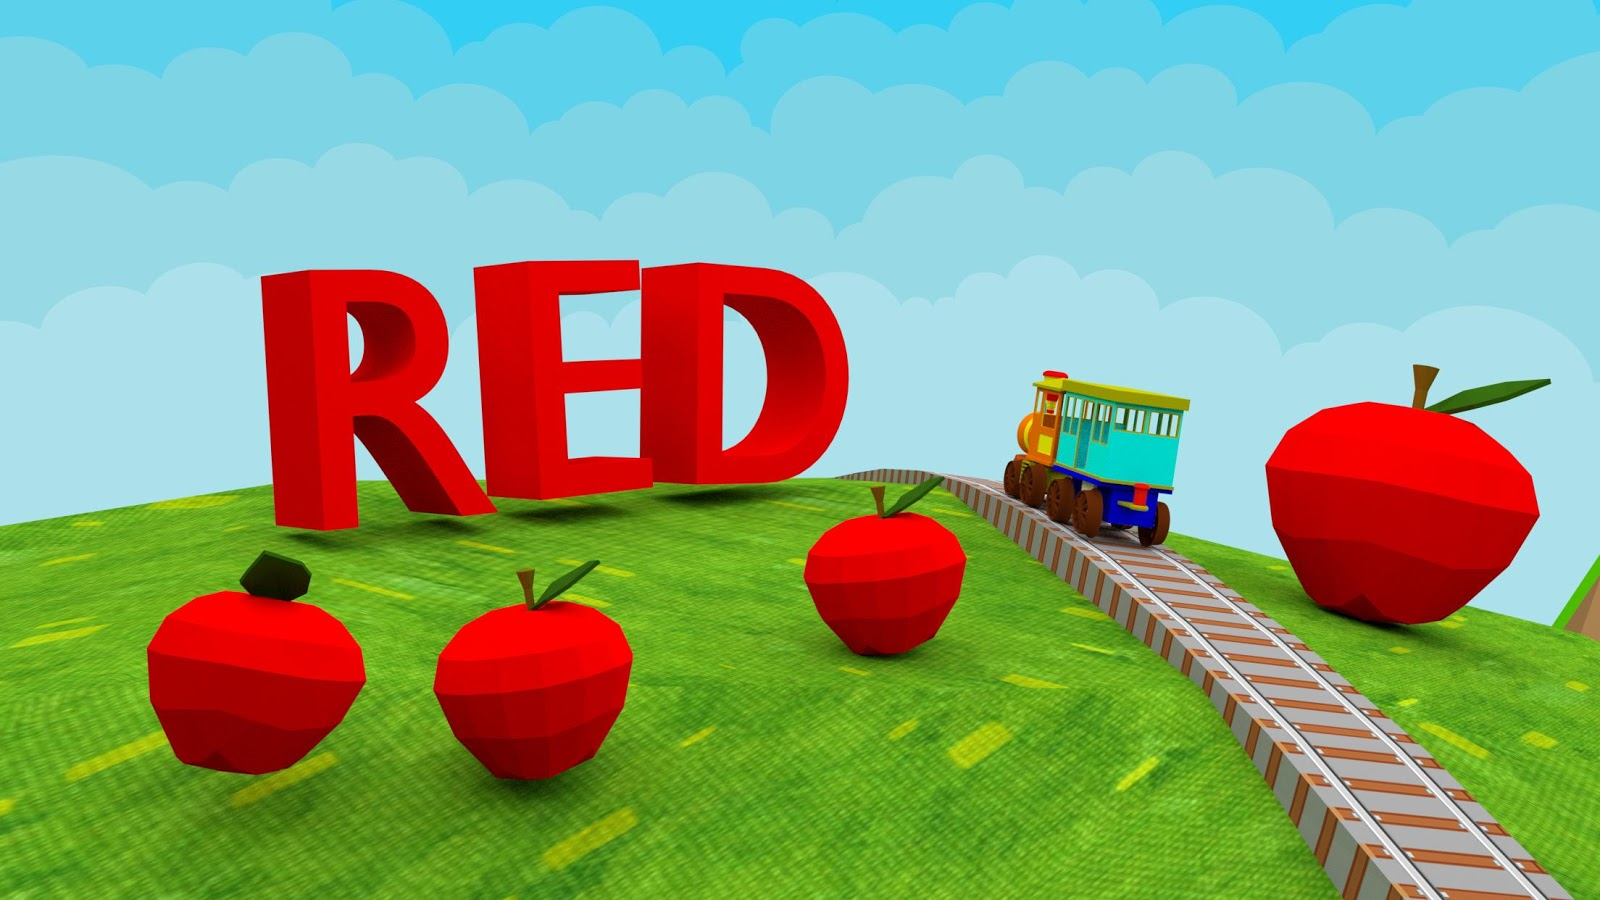 Game to learn colors - Learn Colors 3d Train Game For Preschool Kids Screenshot